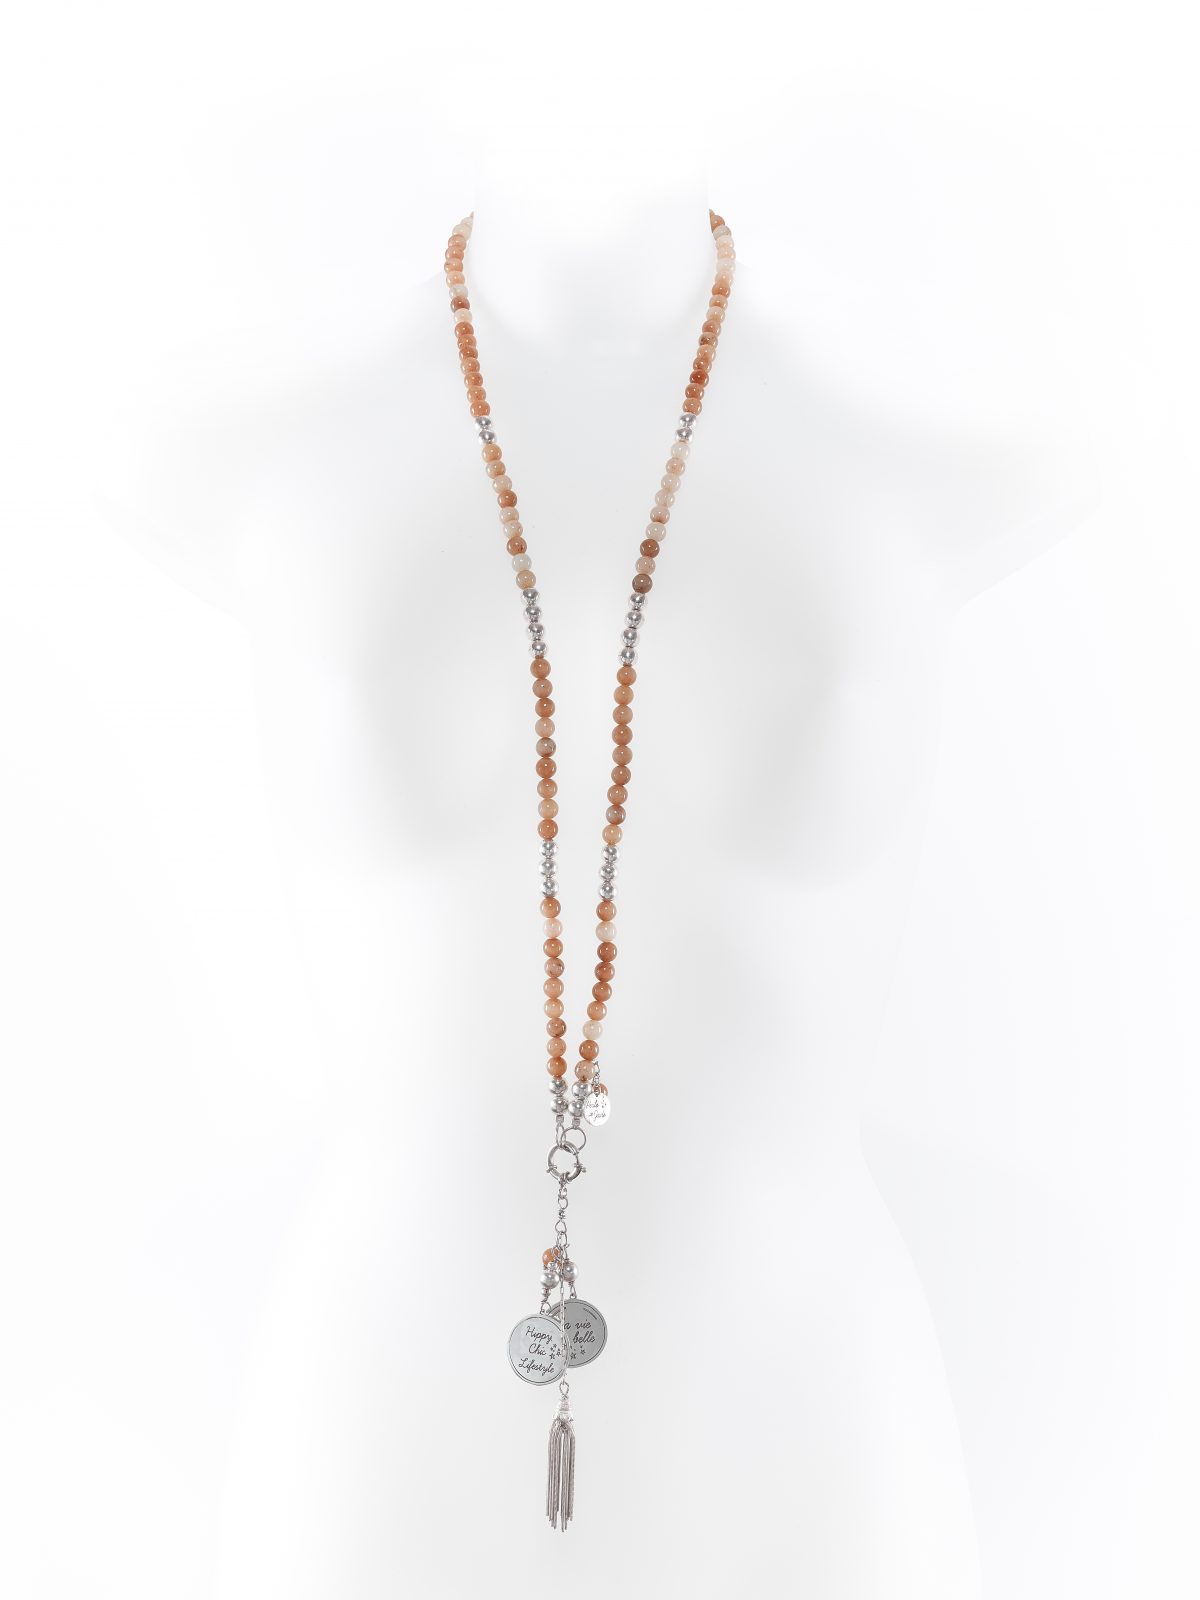 Sunstone and solid silver necklace